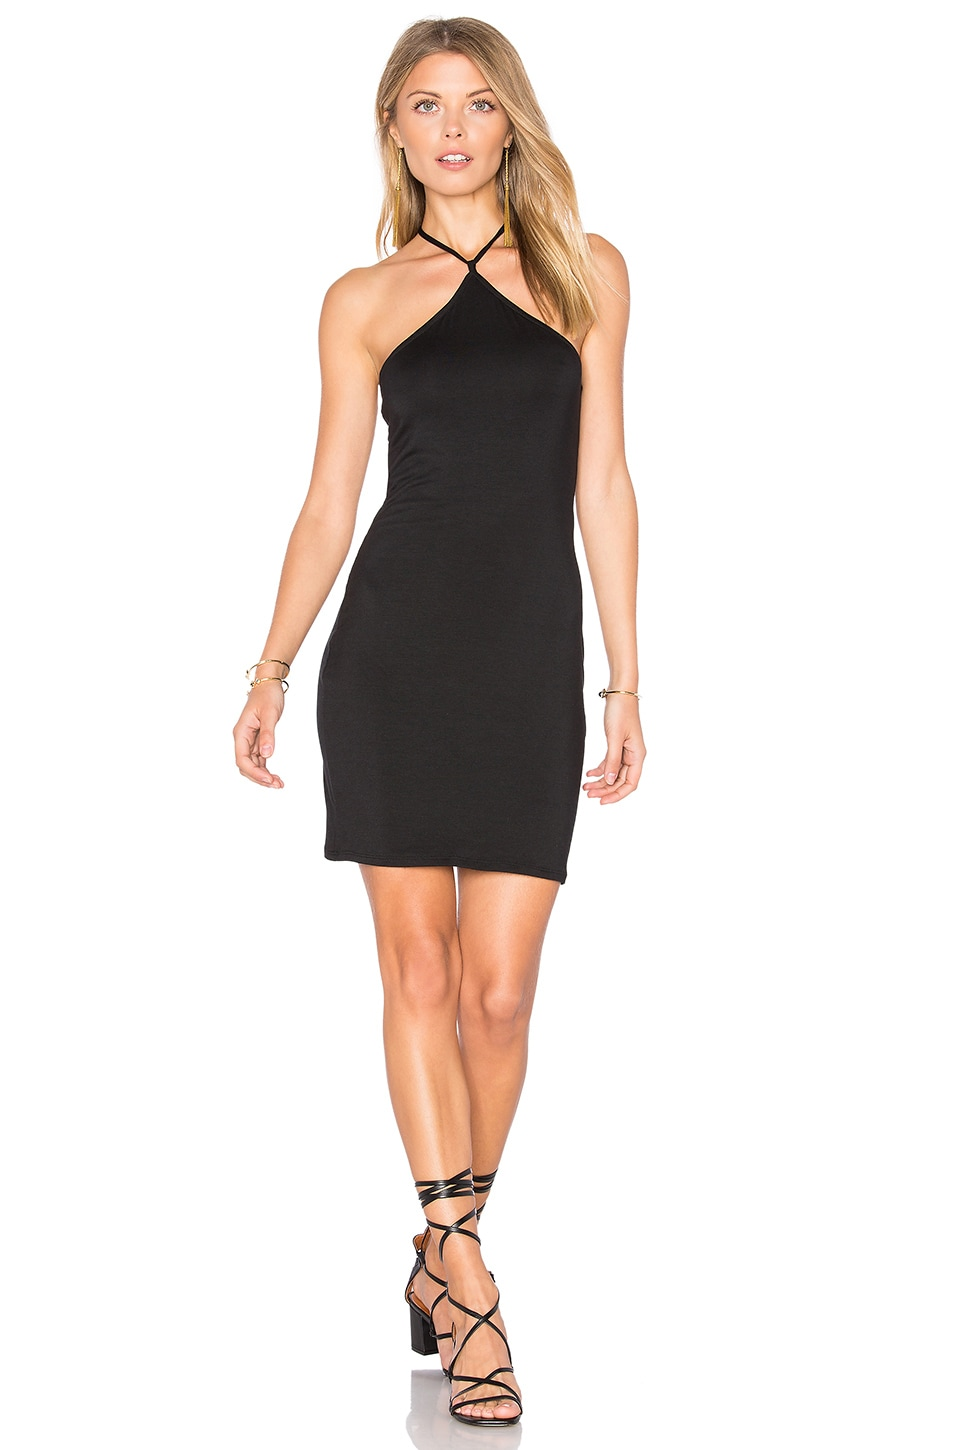 Rachel Pally Joya Dress in Black